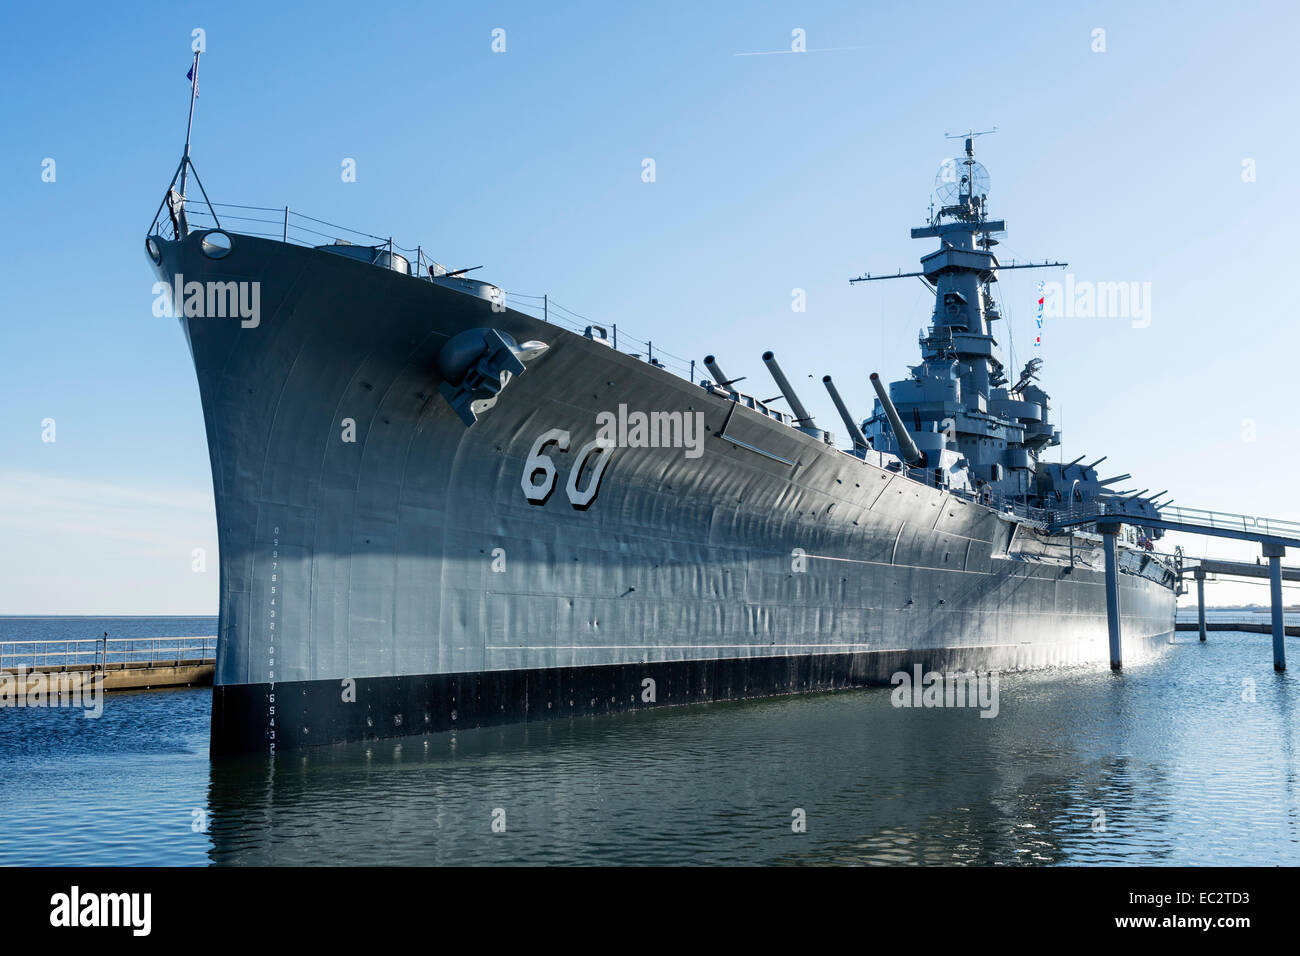 The USS Alabama (BB60) Battleship, Battleship Memorial Park, Mobile, Alabama, USA - Stock Image